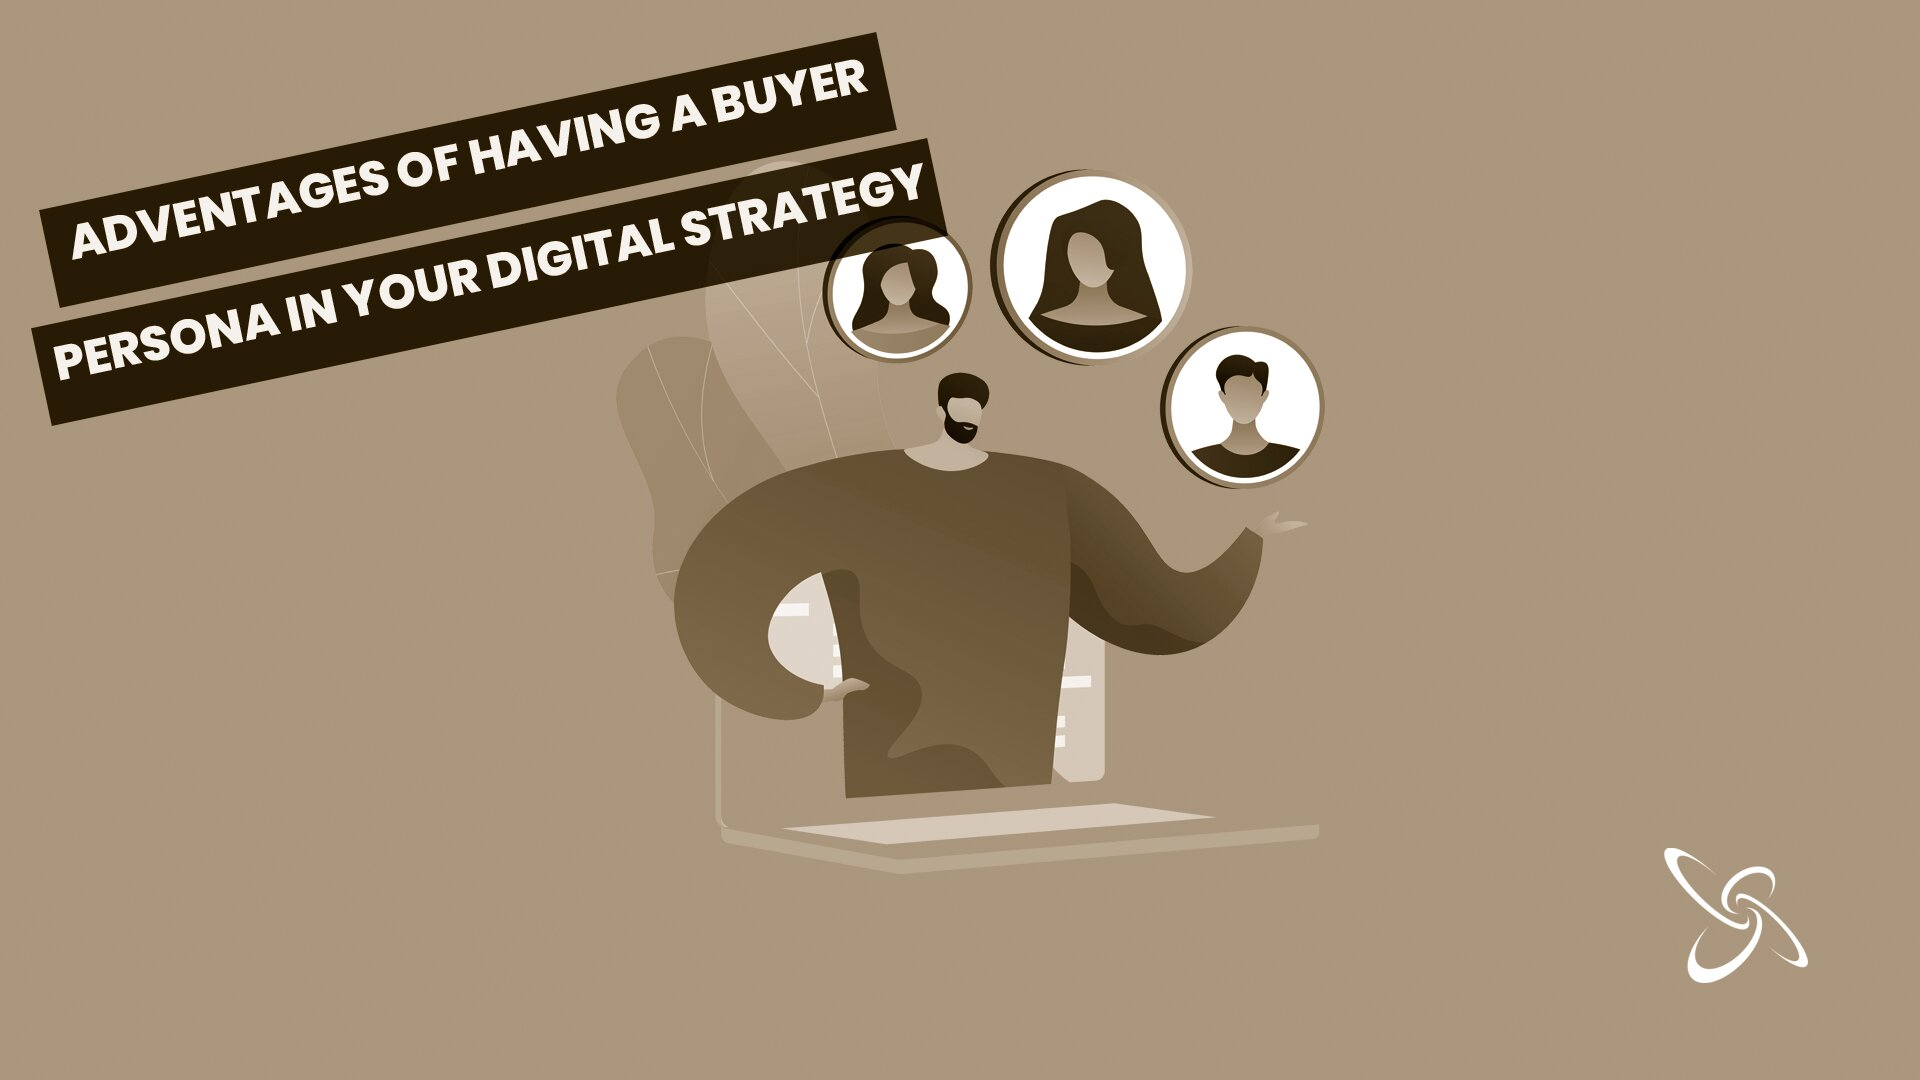 adventages of having a buyer persona in your digital strategy